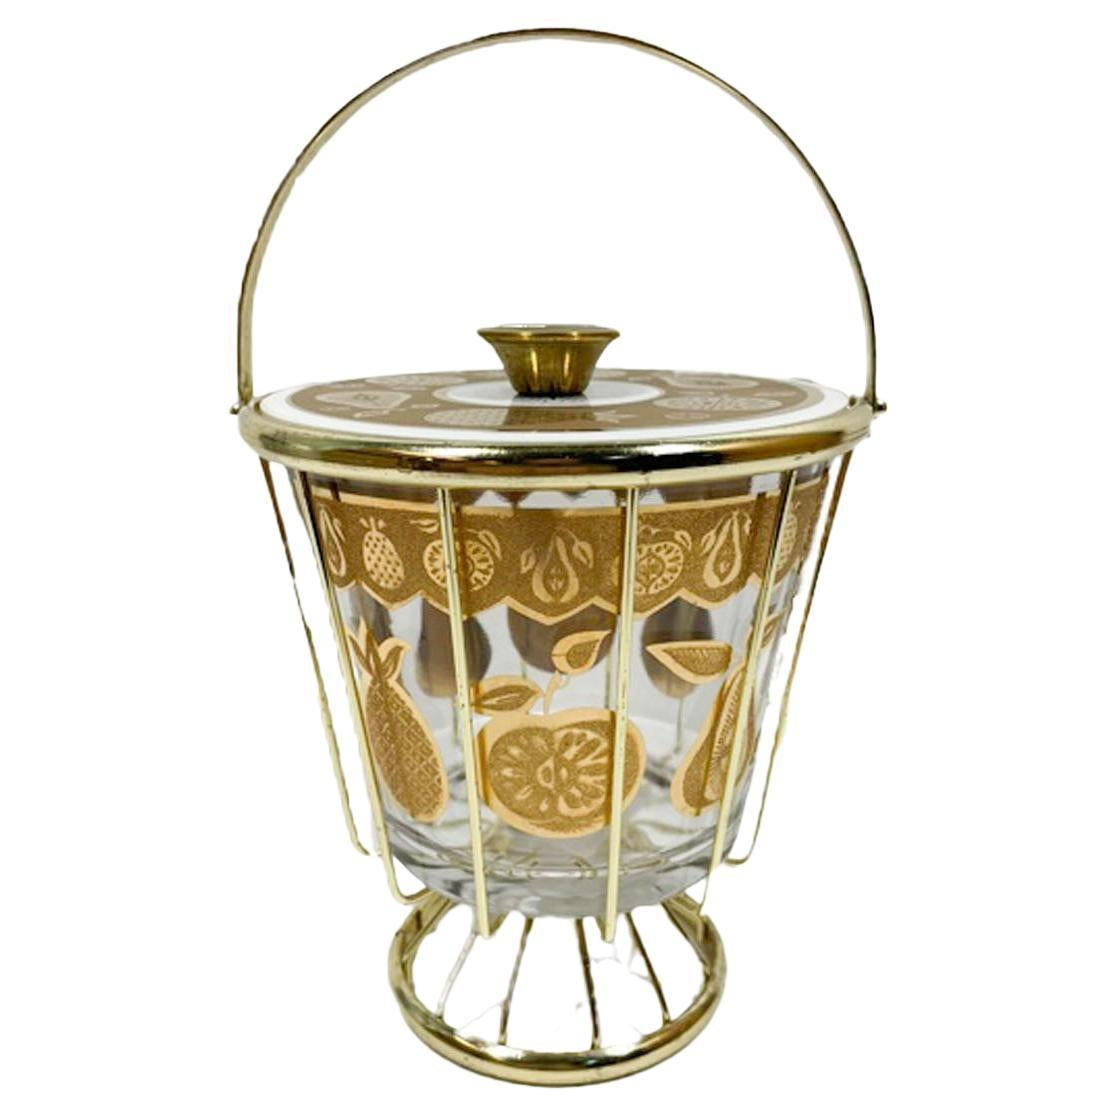 Vintage Culver Florentine Pattern Ice Bowl and Cover in Gold-Tone Wirework Caddy